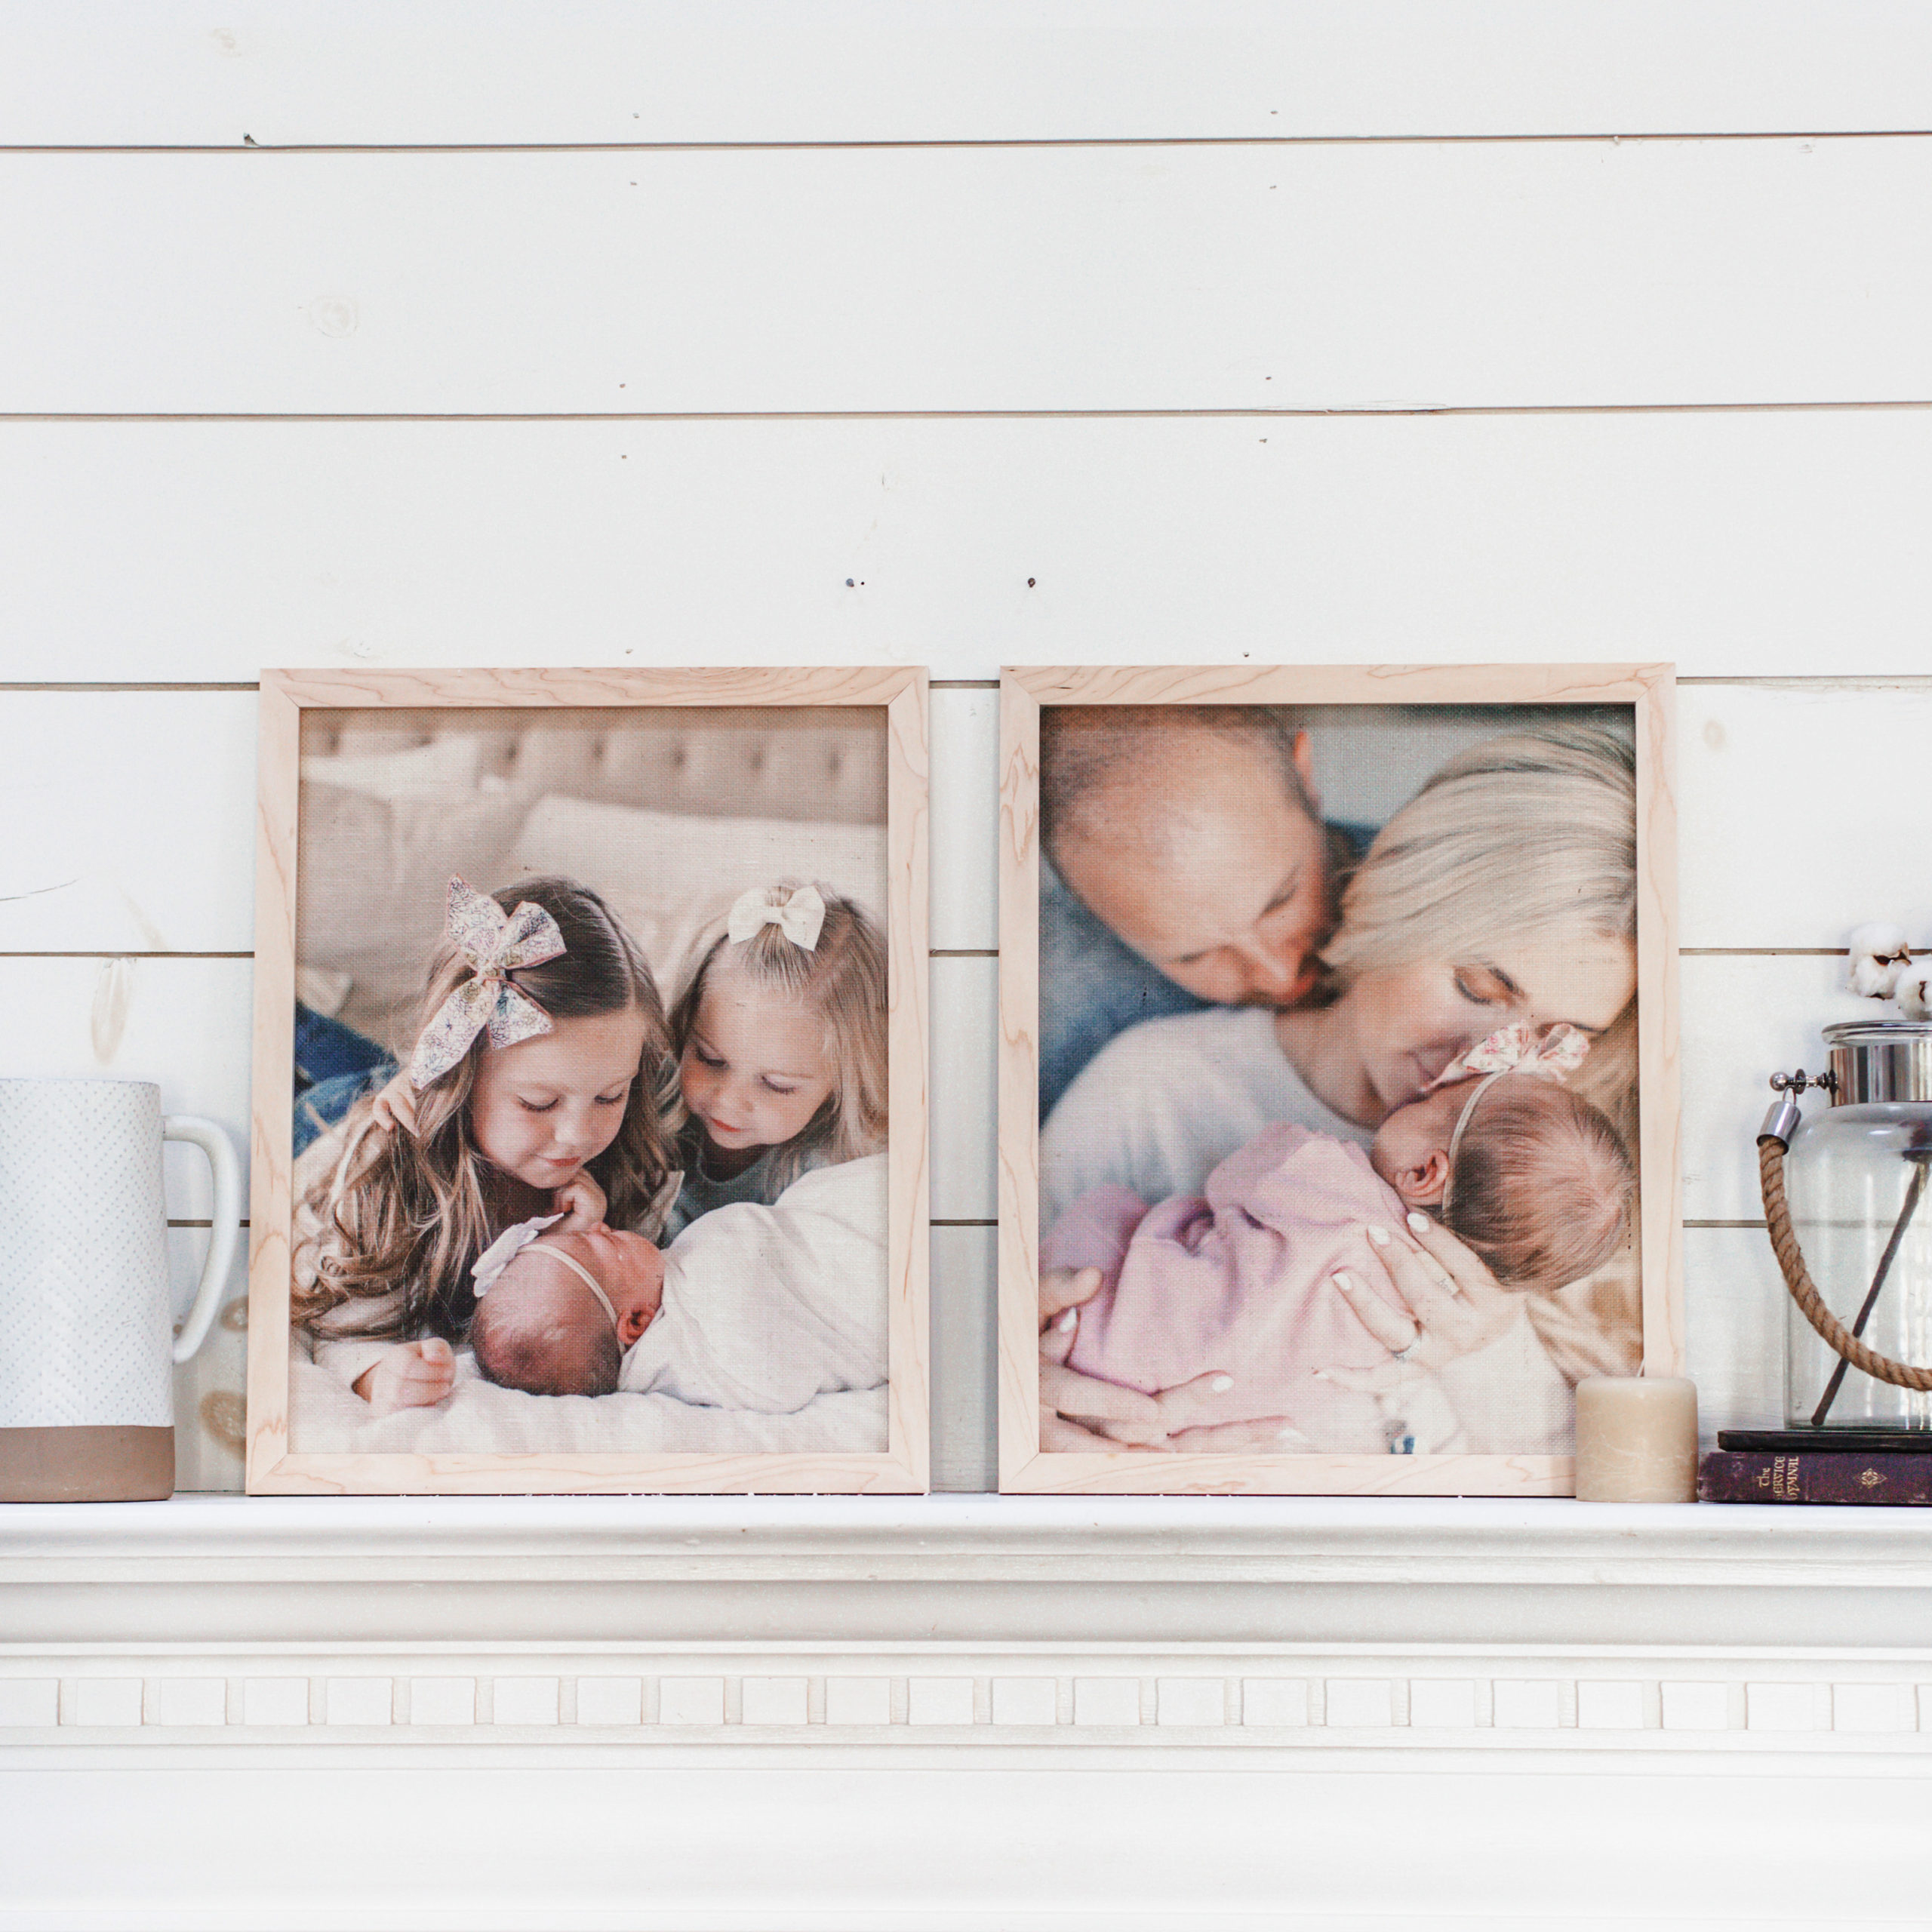 16x20 Framed Burlap Prints | $42 ($140)